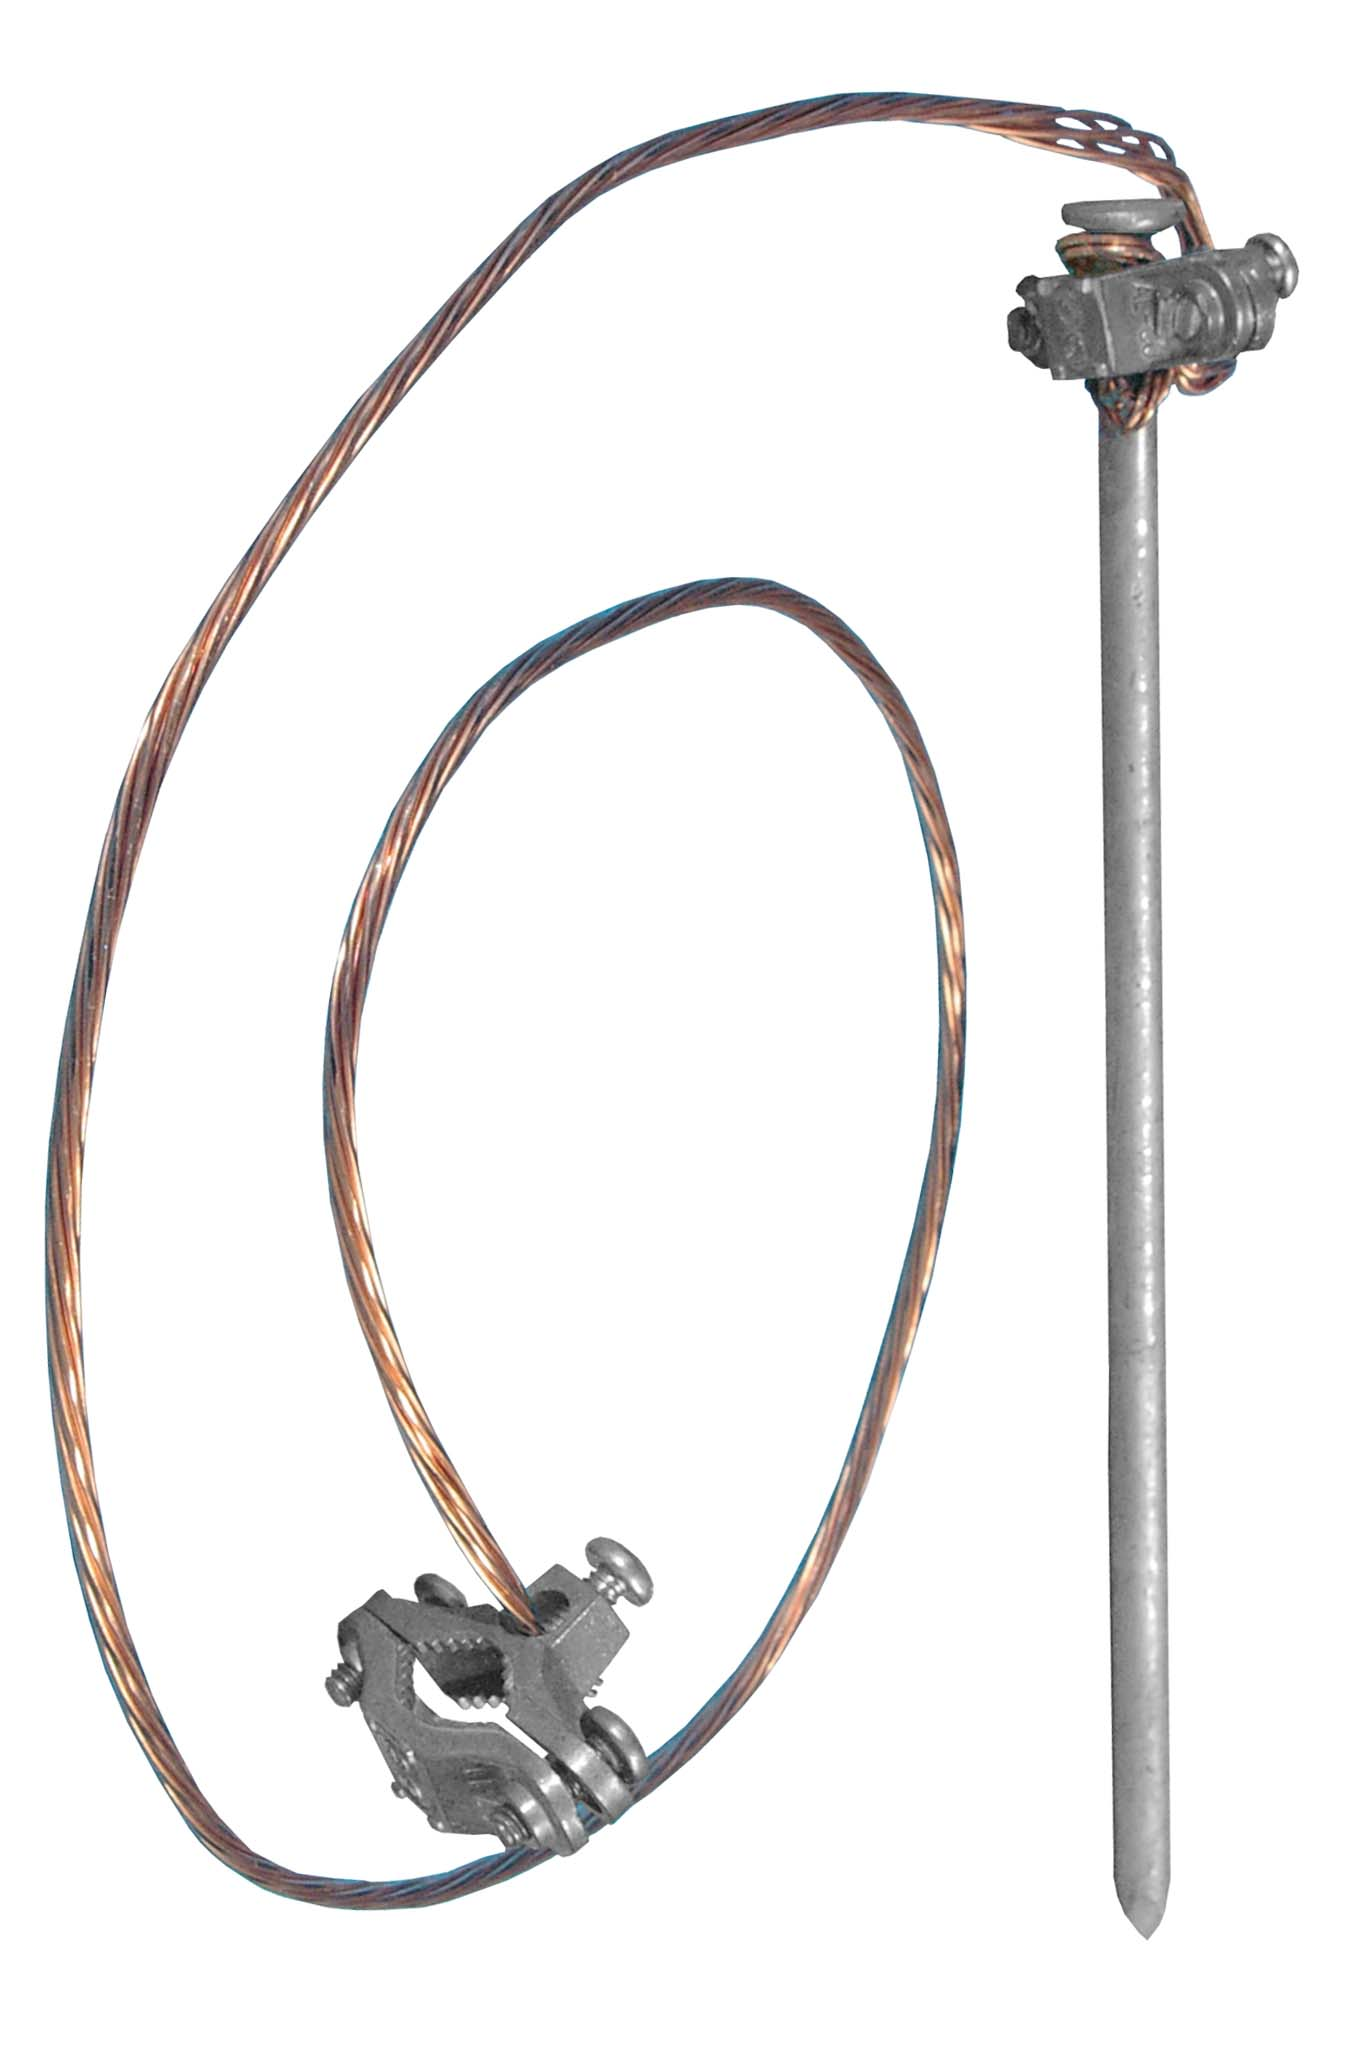 Flagpole anchoring hardware from Flag Outlet